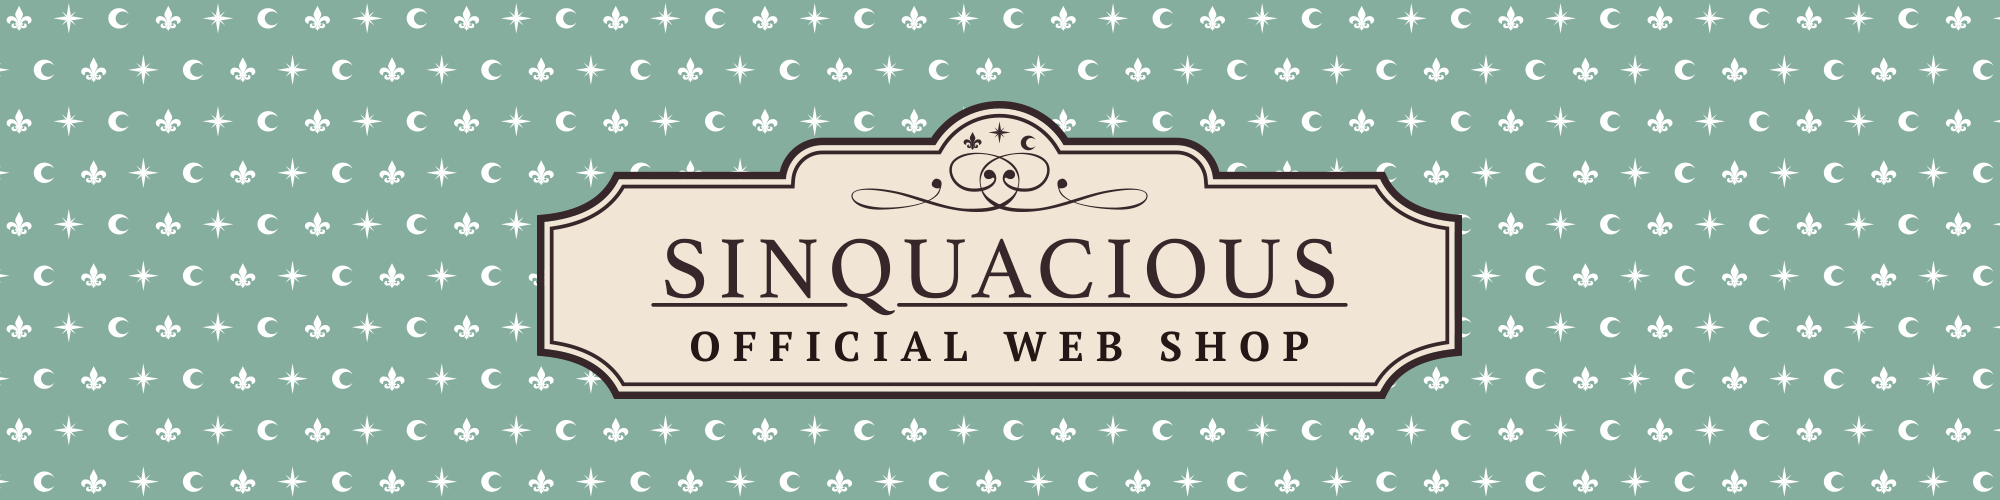 Sinquacious Official Web Shop